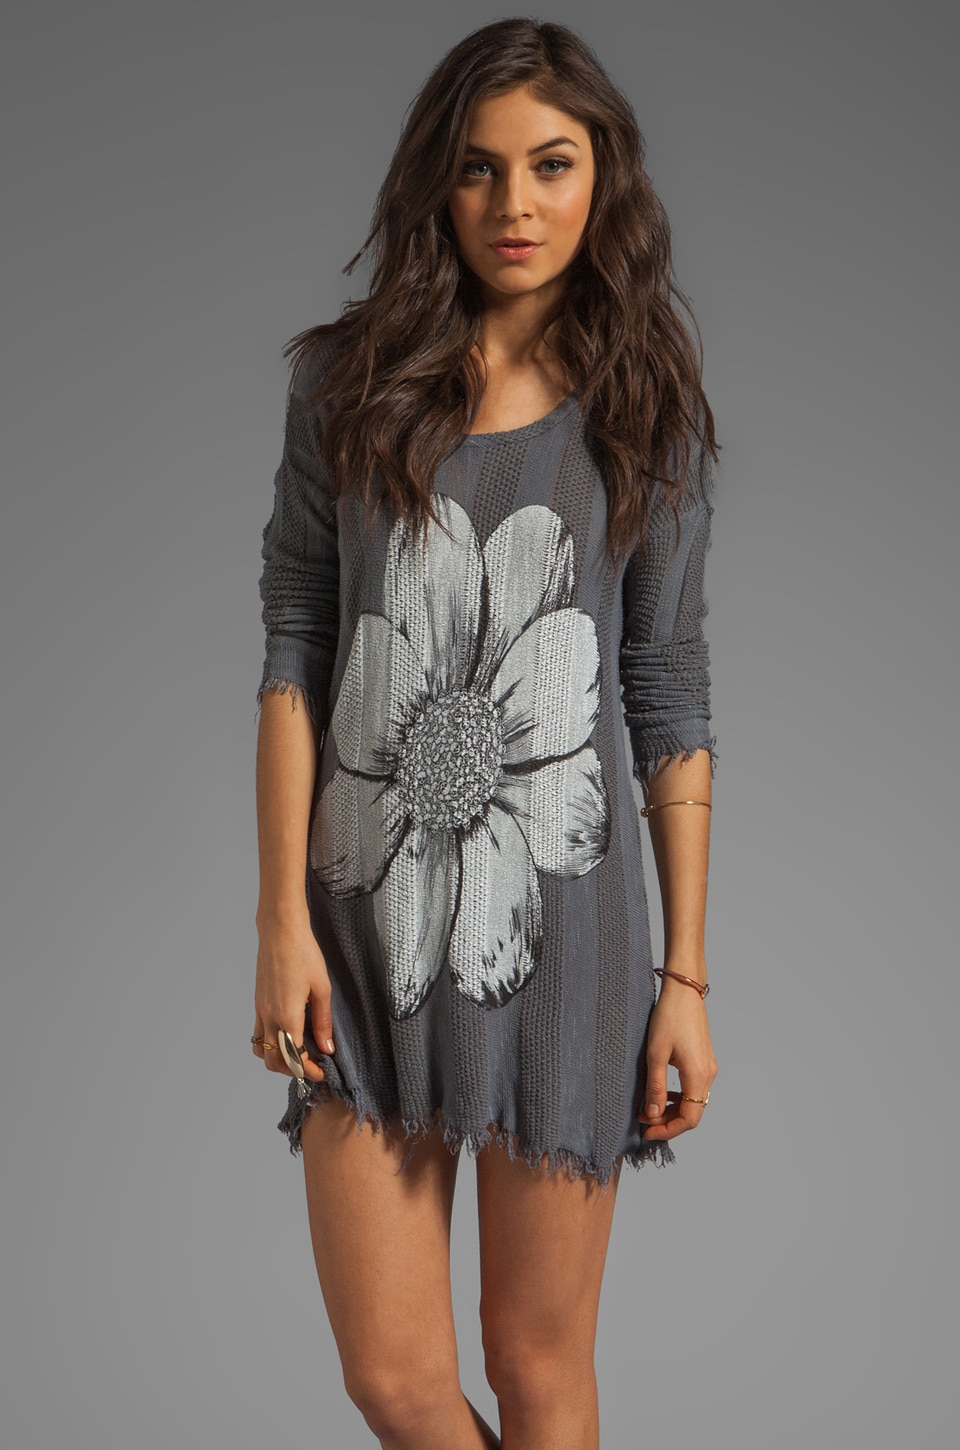 Lauren Moshi Gretta Color Skull Flower Sweater Dress in Steel